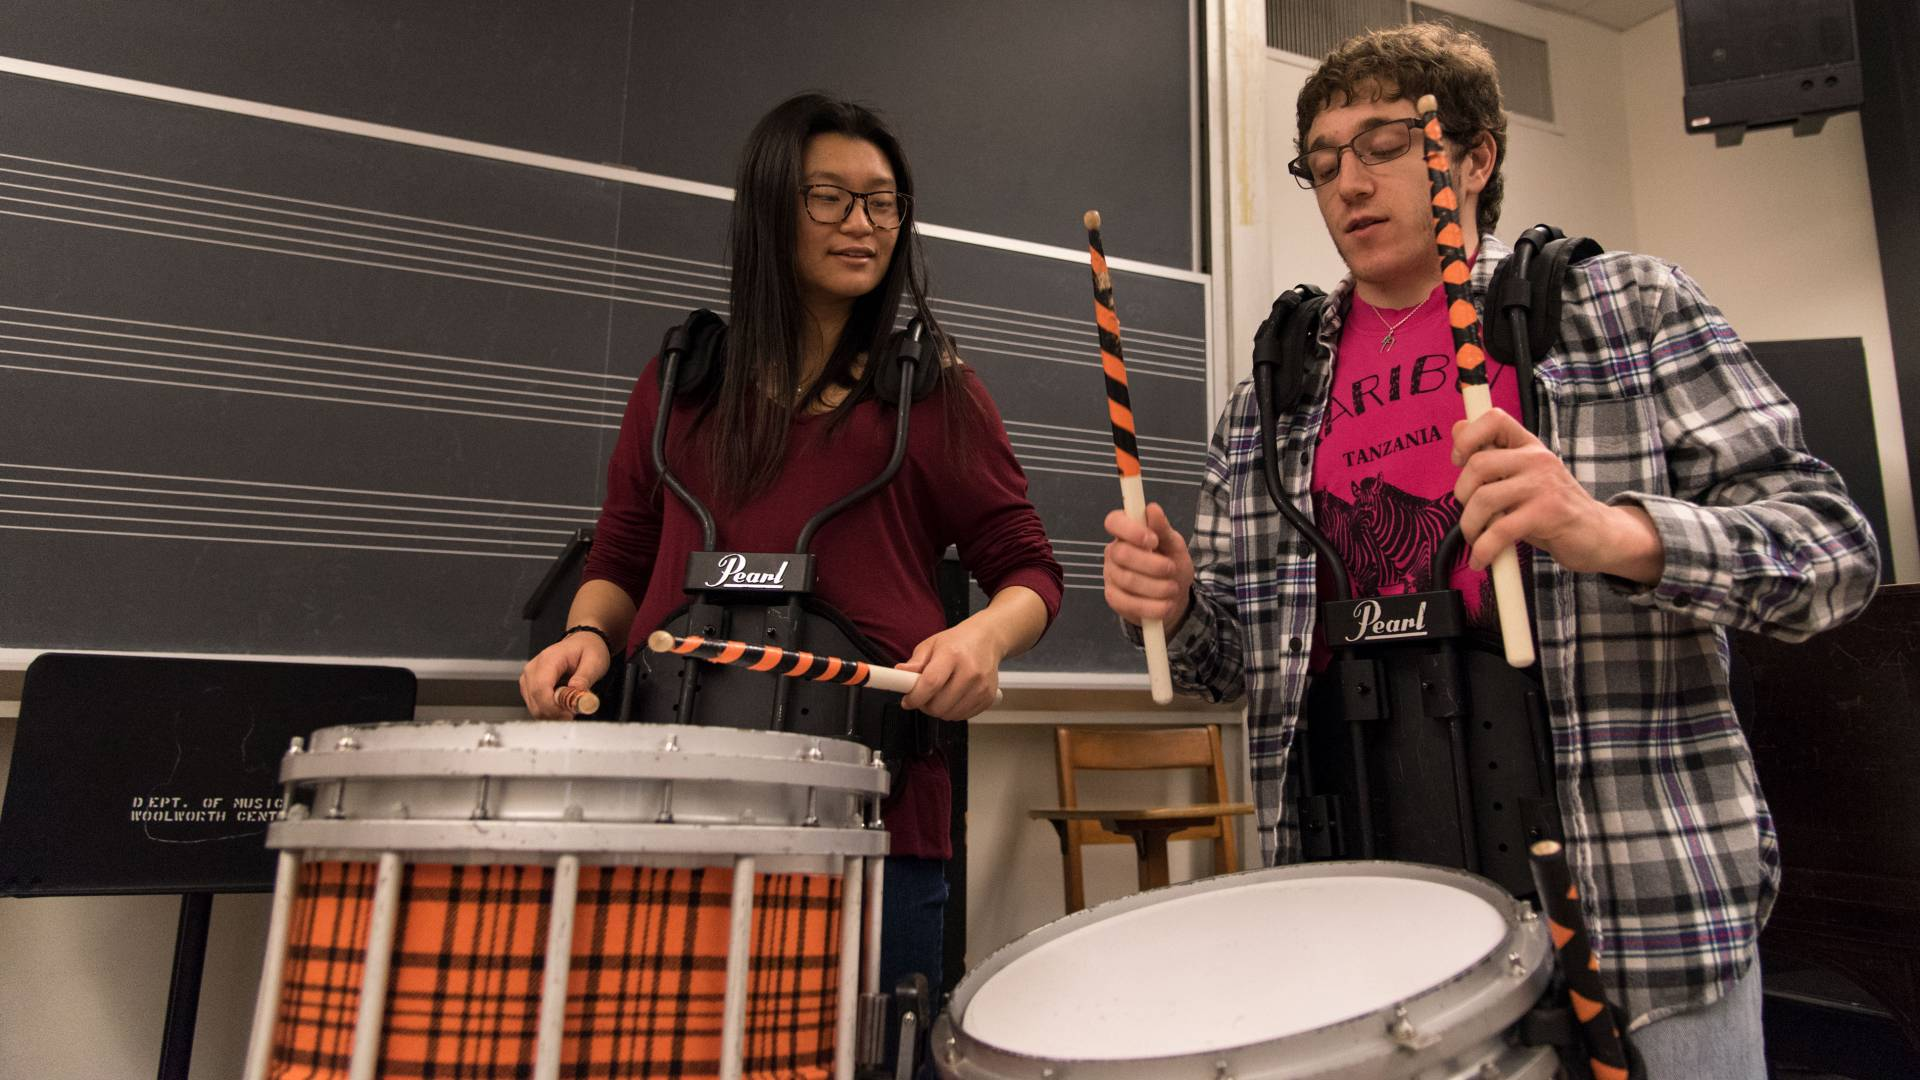 Student demonstrating drums to another student